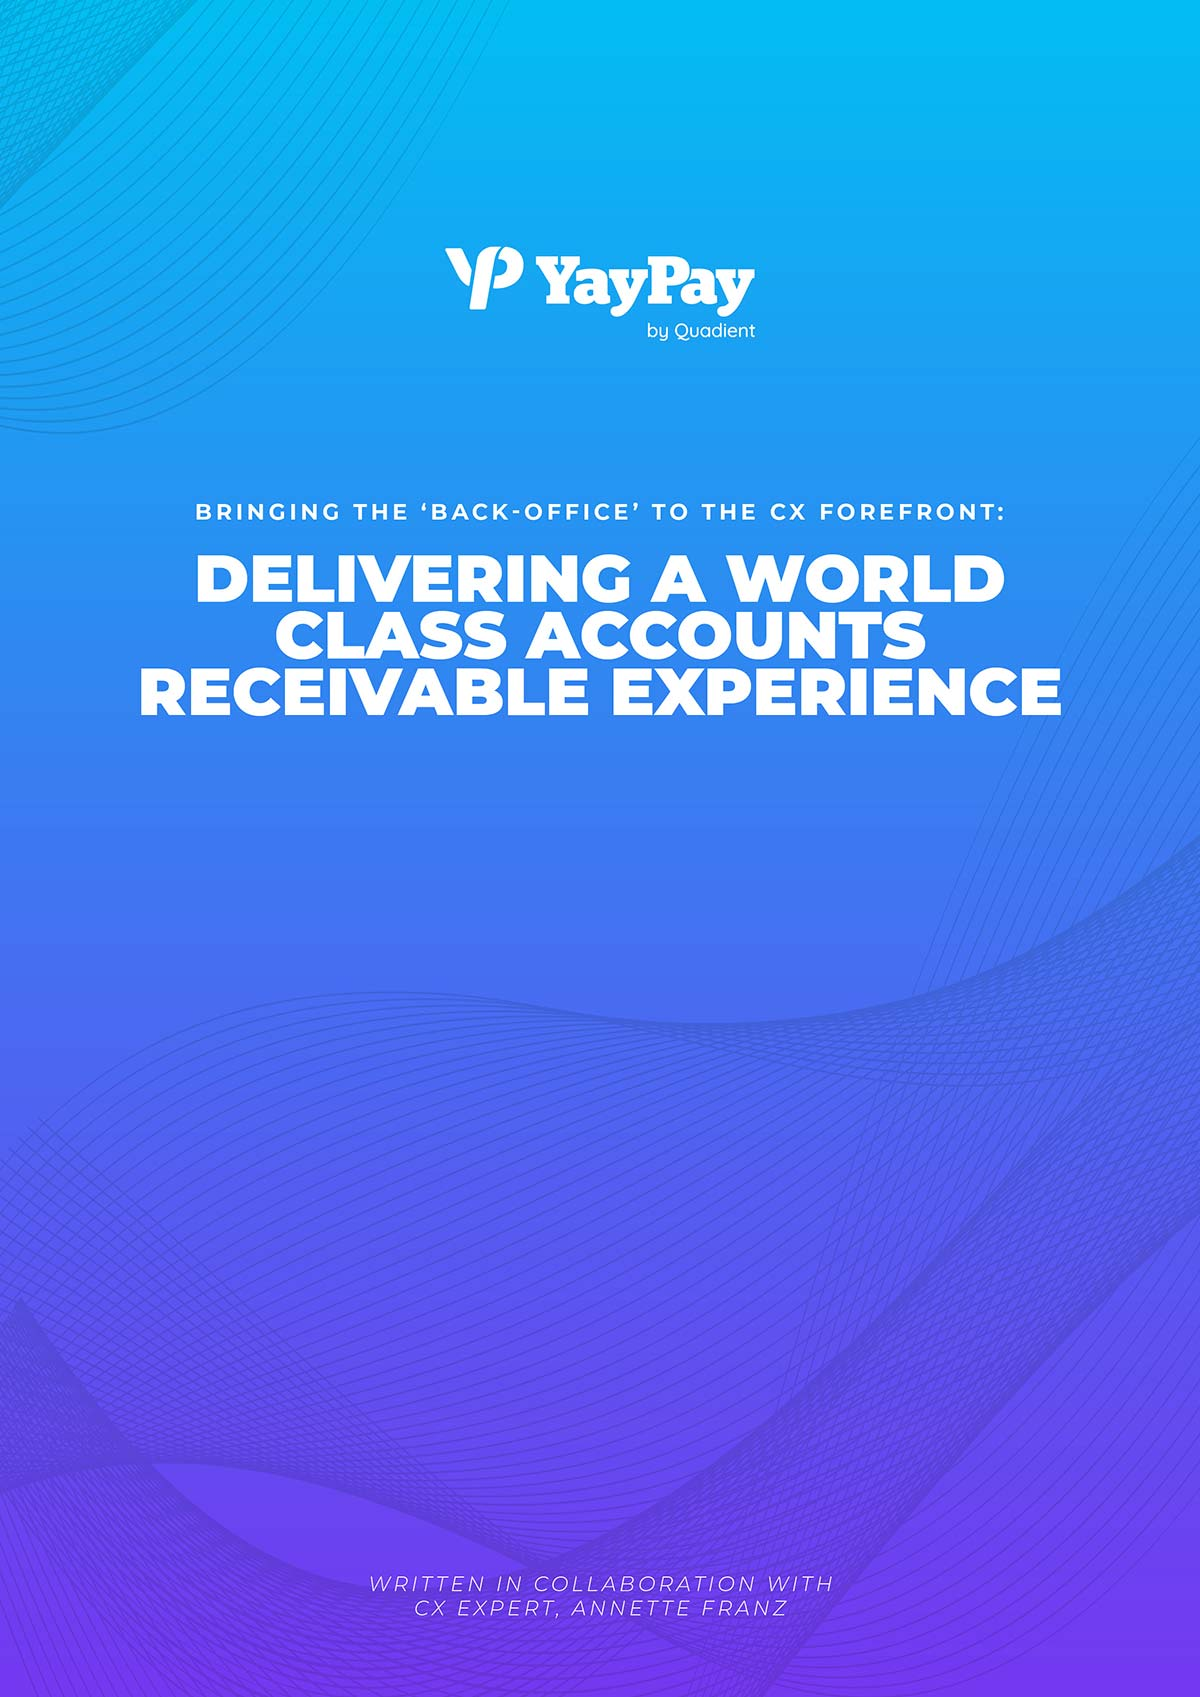 DELIVERING A WORLD CLASS ACCOUNTS RECEIVABLE EXPERIENCE